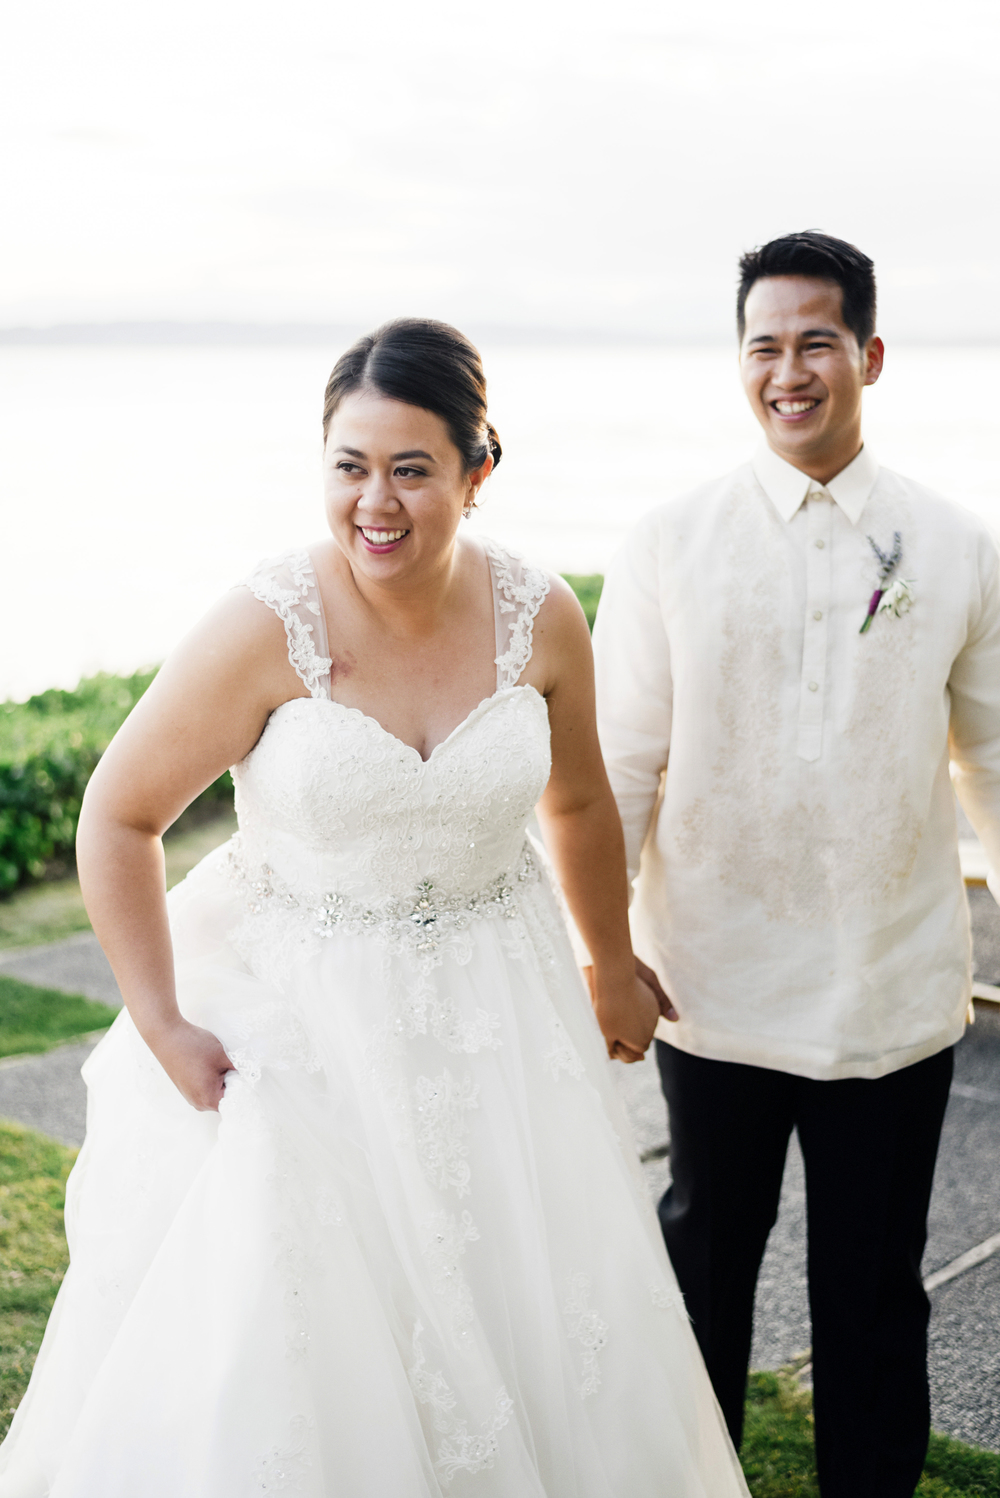 Bride and Groom | Joe and Patience Photography | Filipino Wedding Planner | Seattle Wedding Planner | Ballard Bay Club Wedding